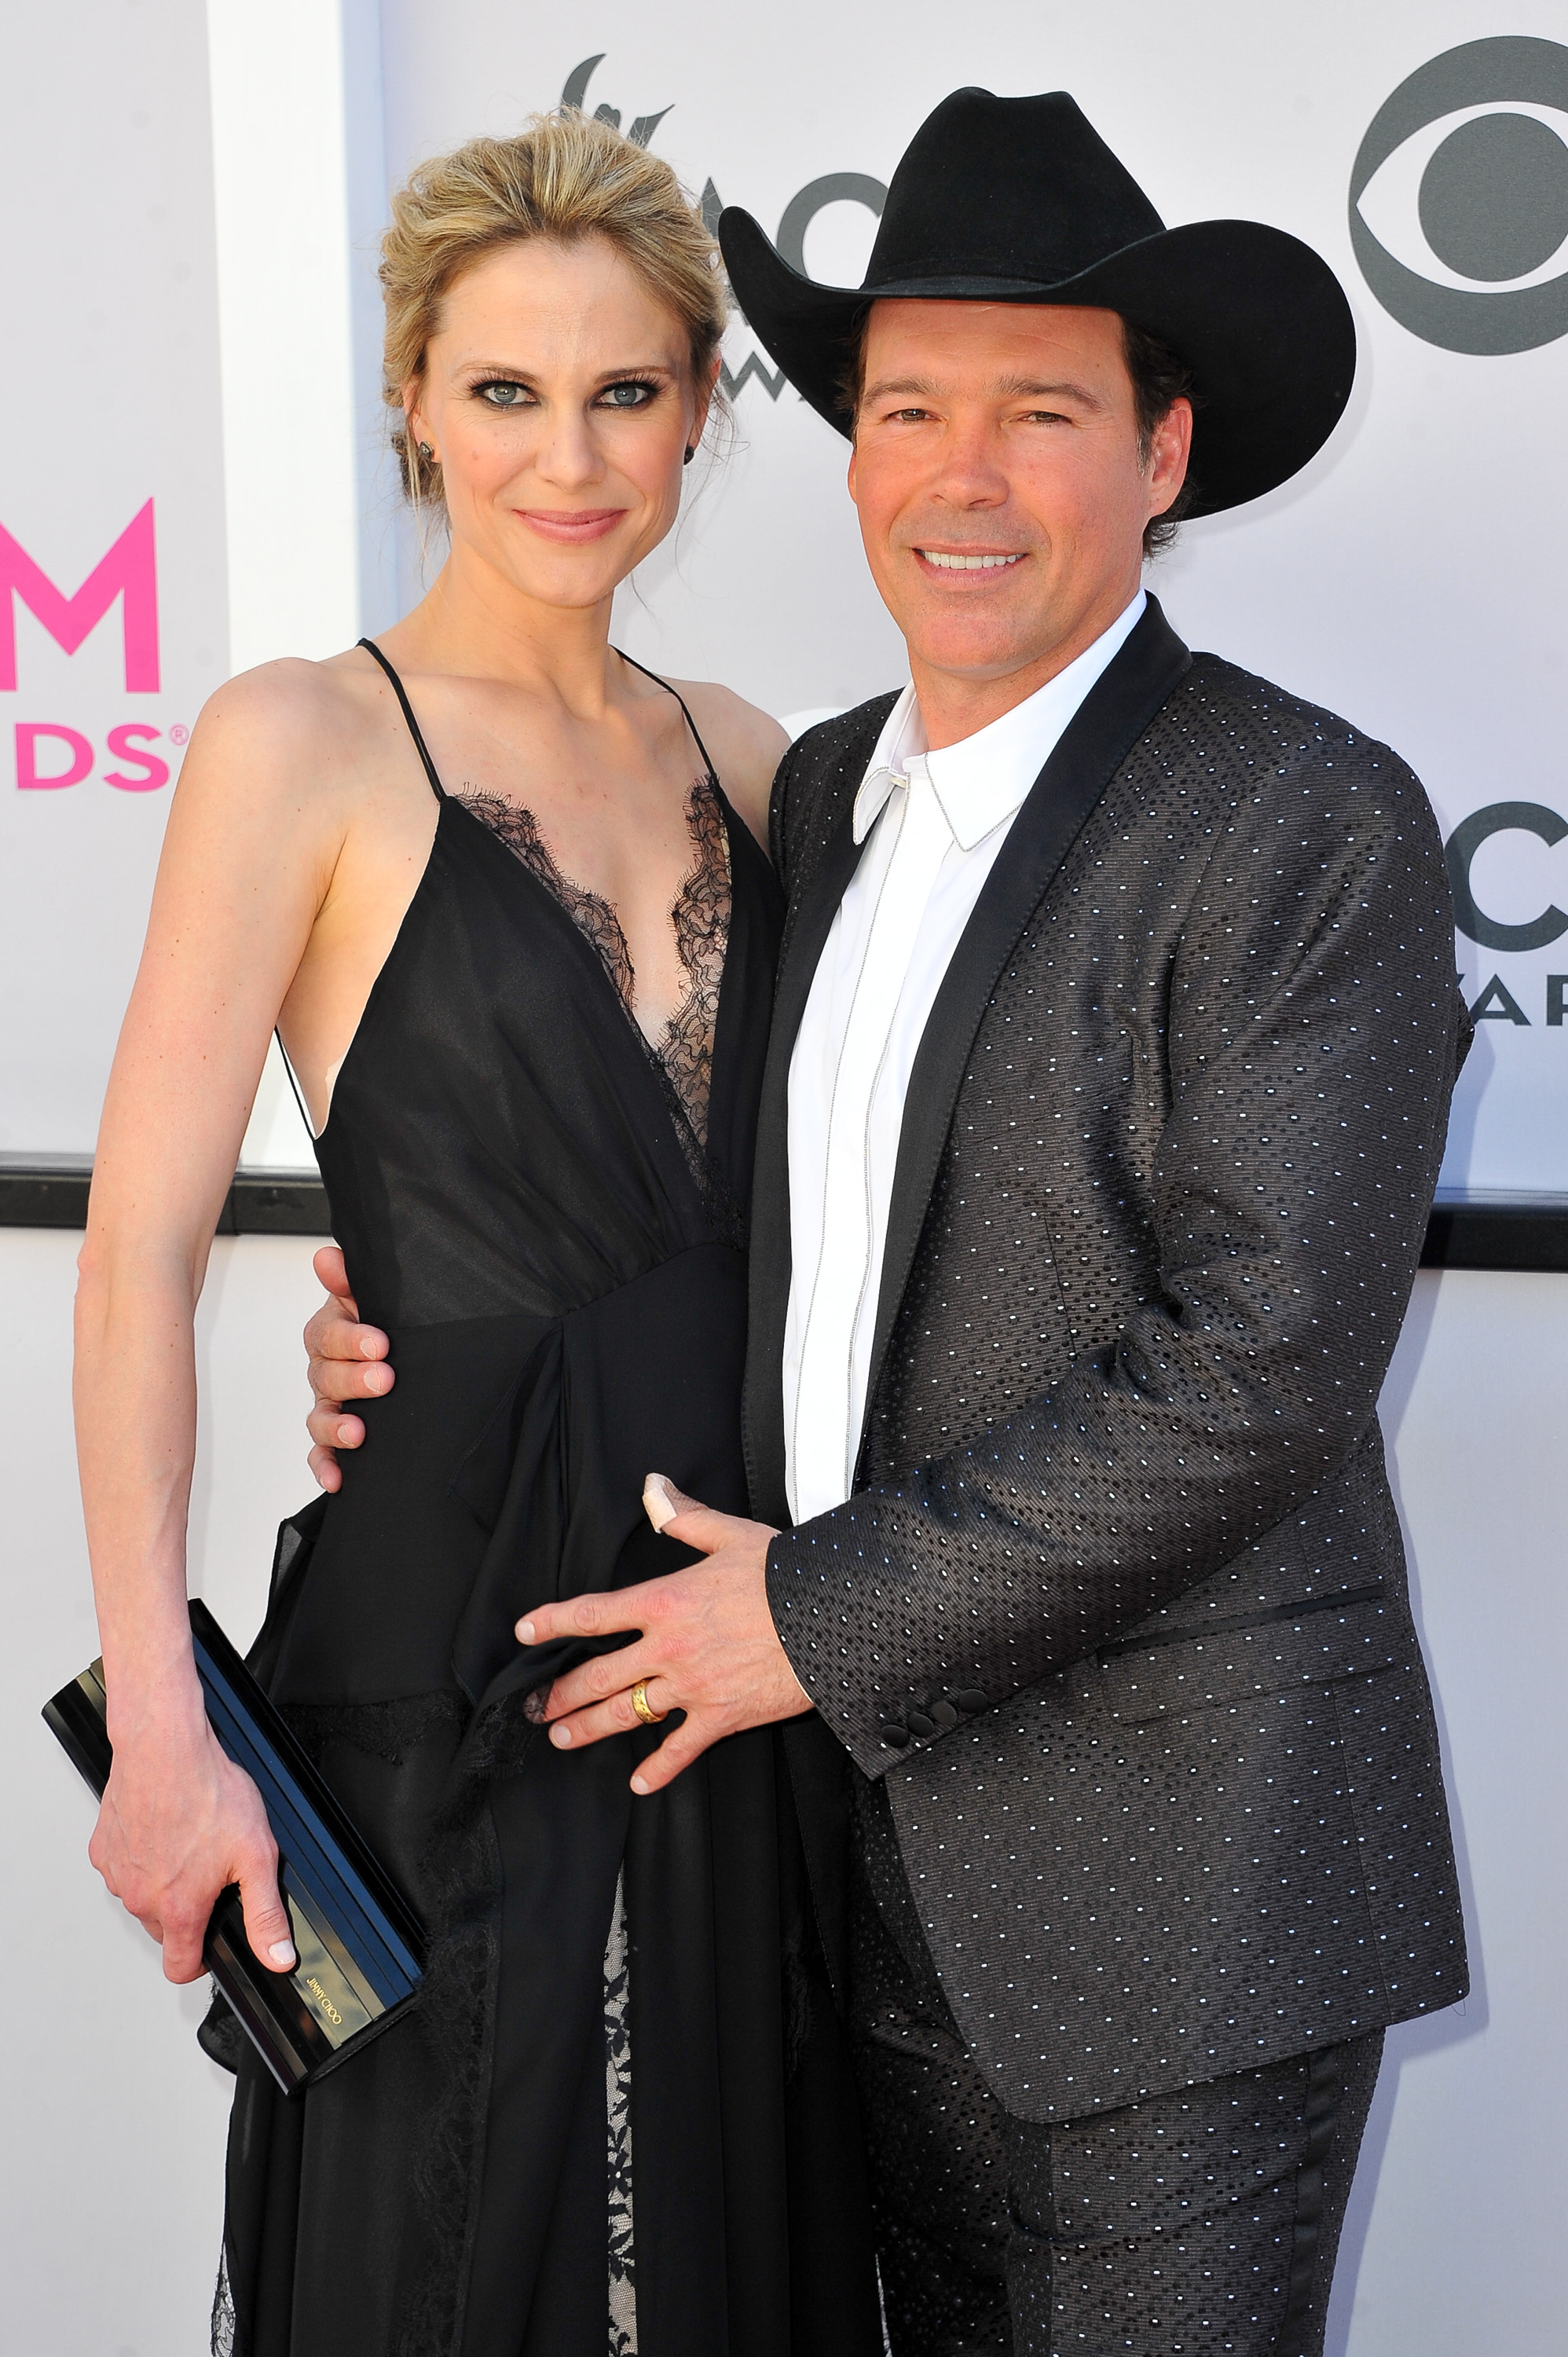 Jessica Craig and Clay Walker; Photo by Allen Berezovsky/WireImage for Fashion Media